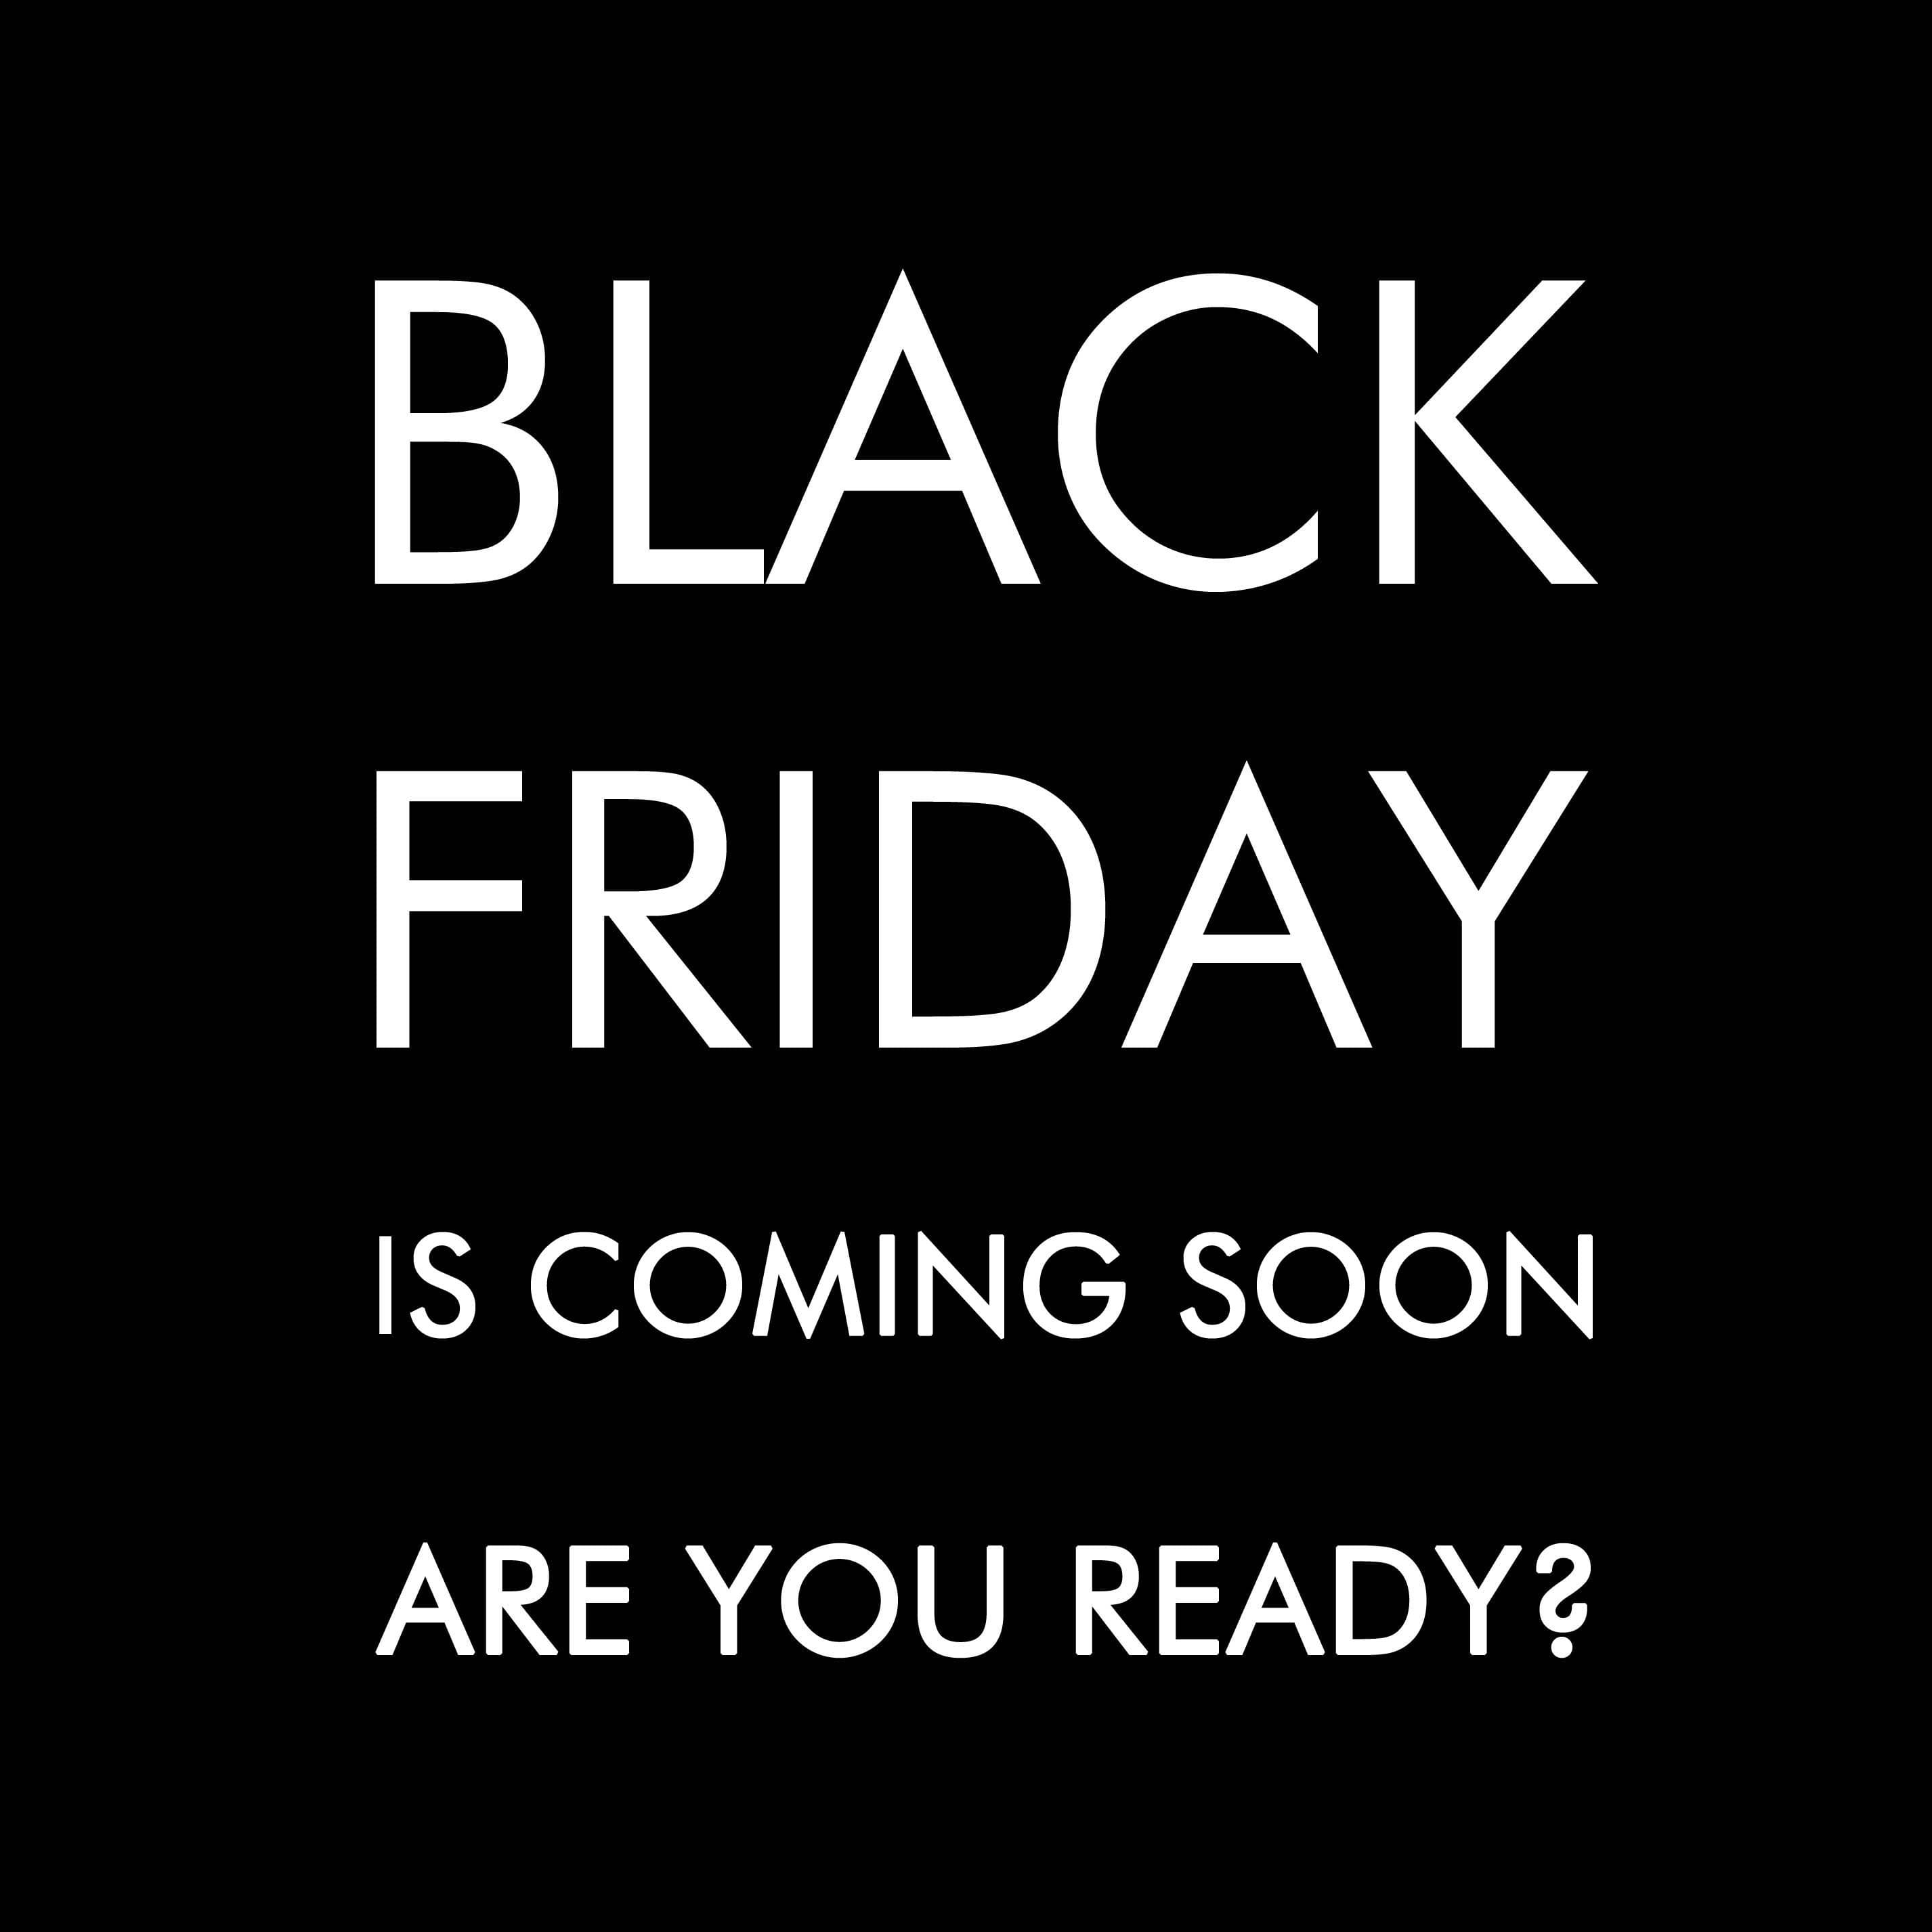 Black Friday is coming soon!